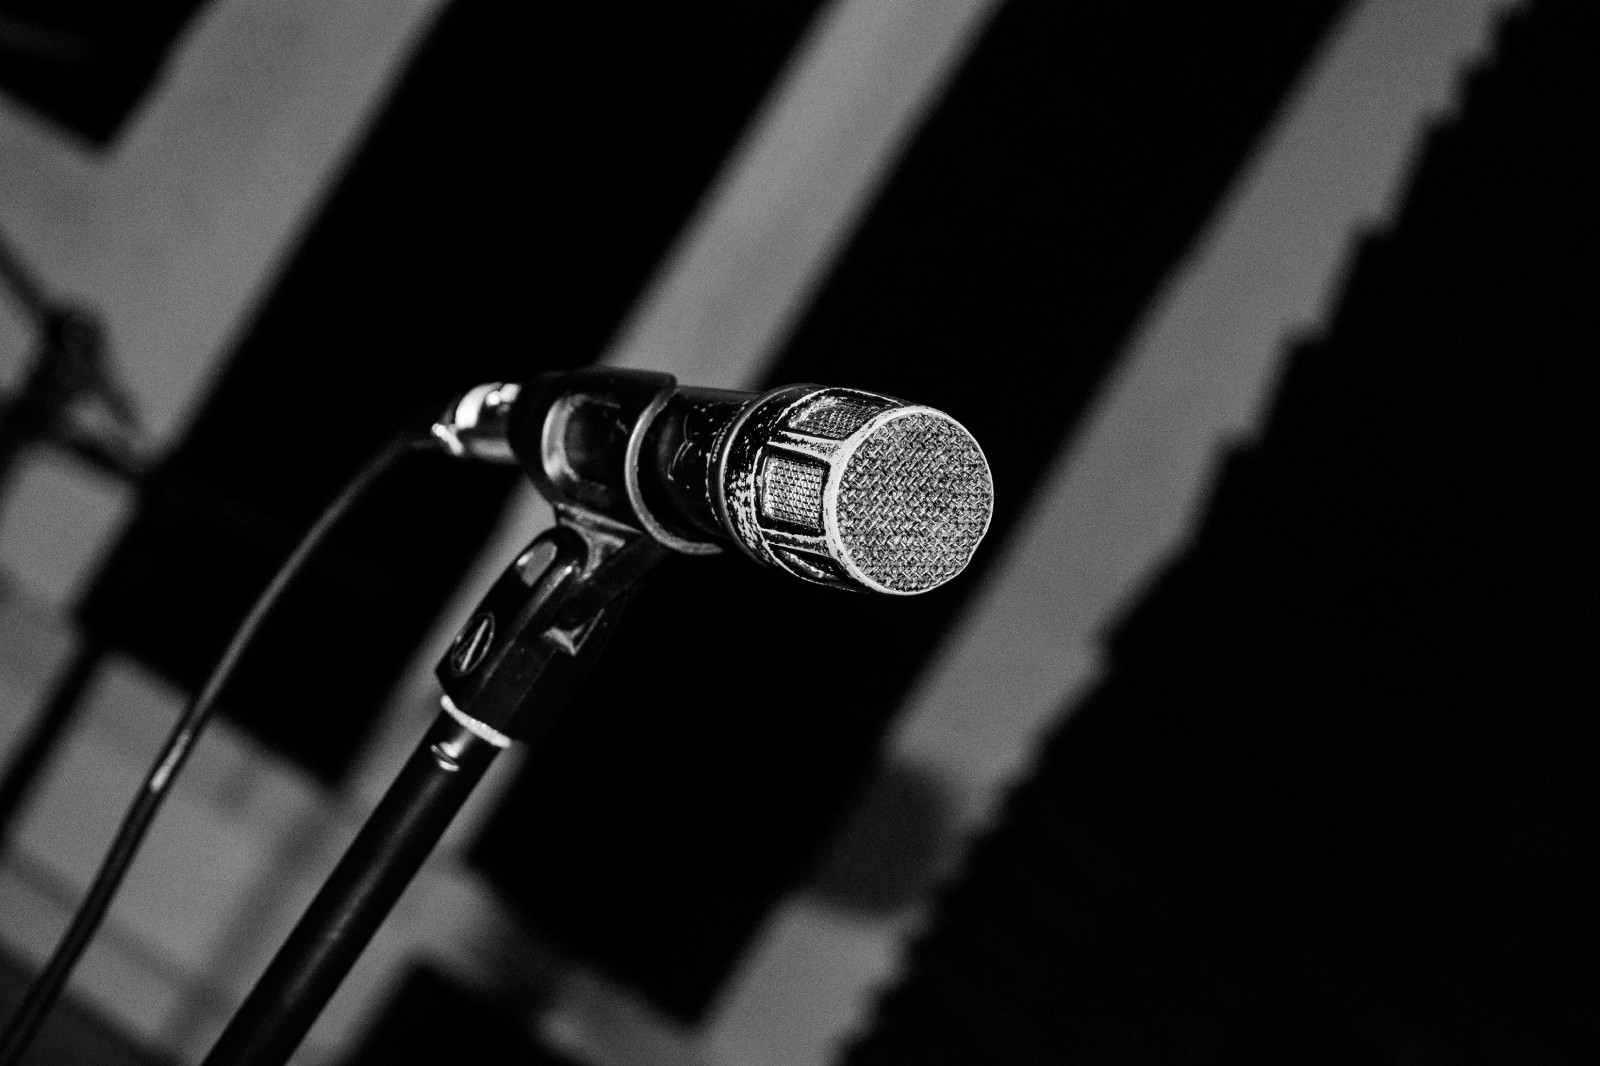 How to choose a good microphone for voice recording. Studio microphone for voice recording 53